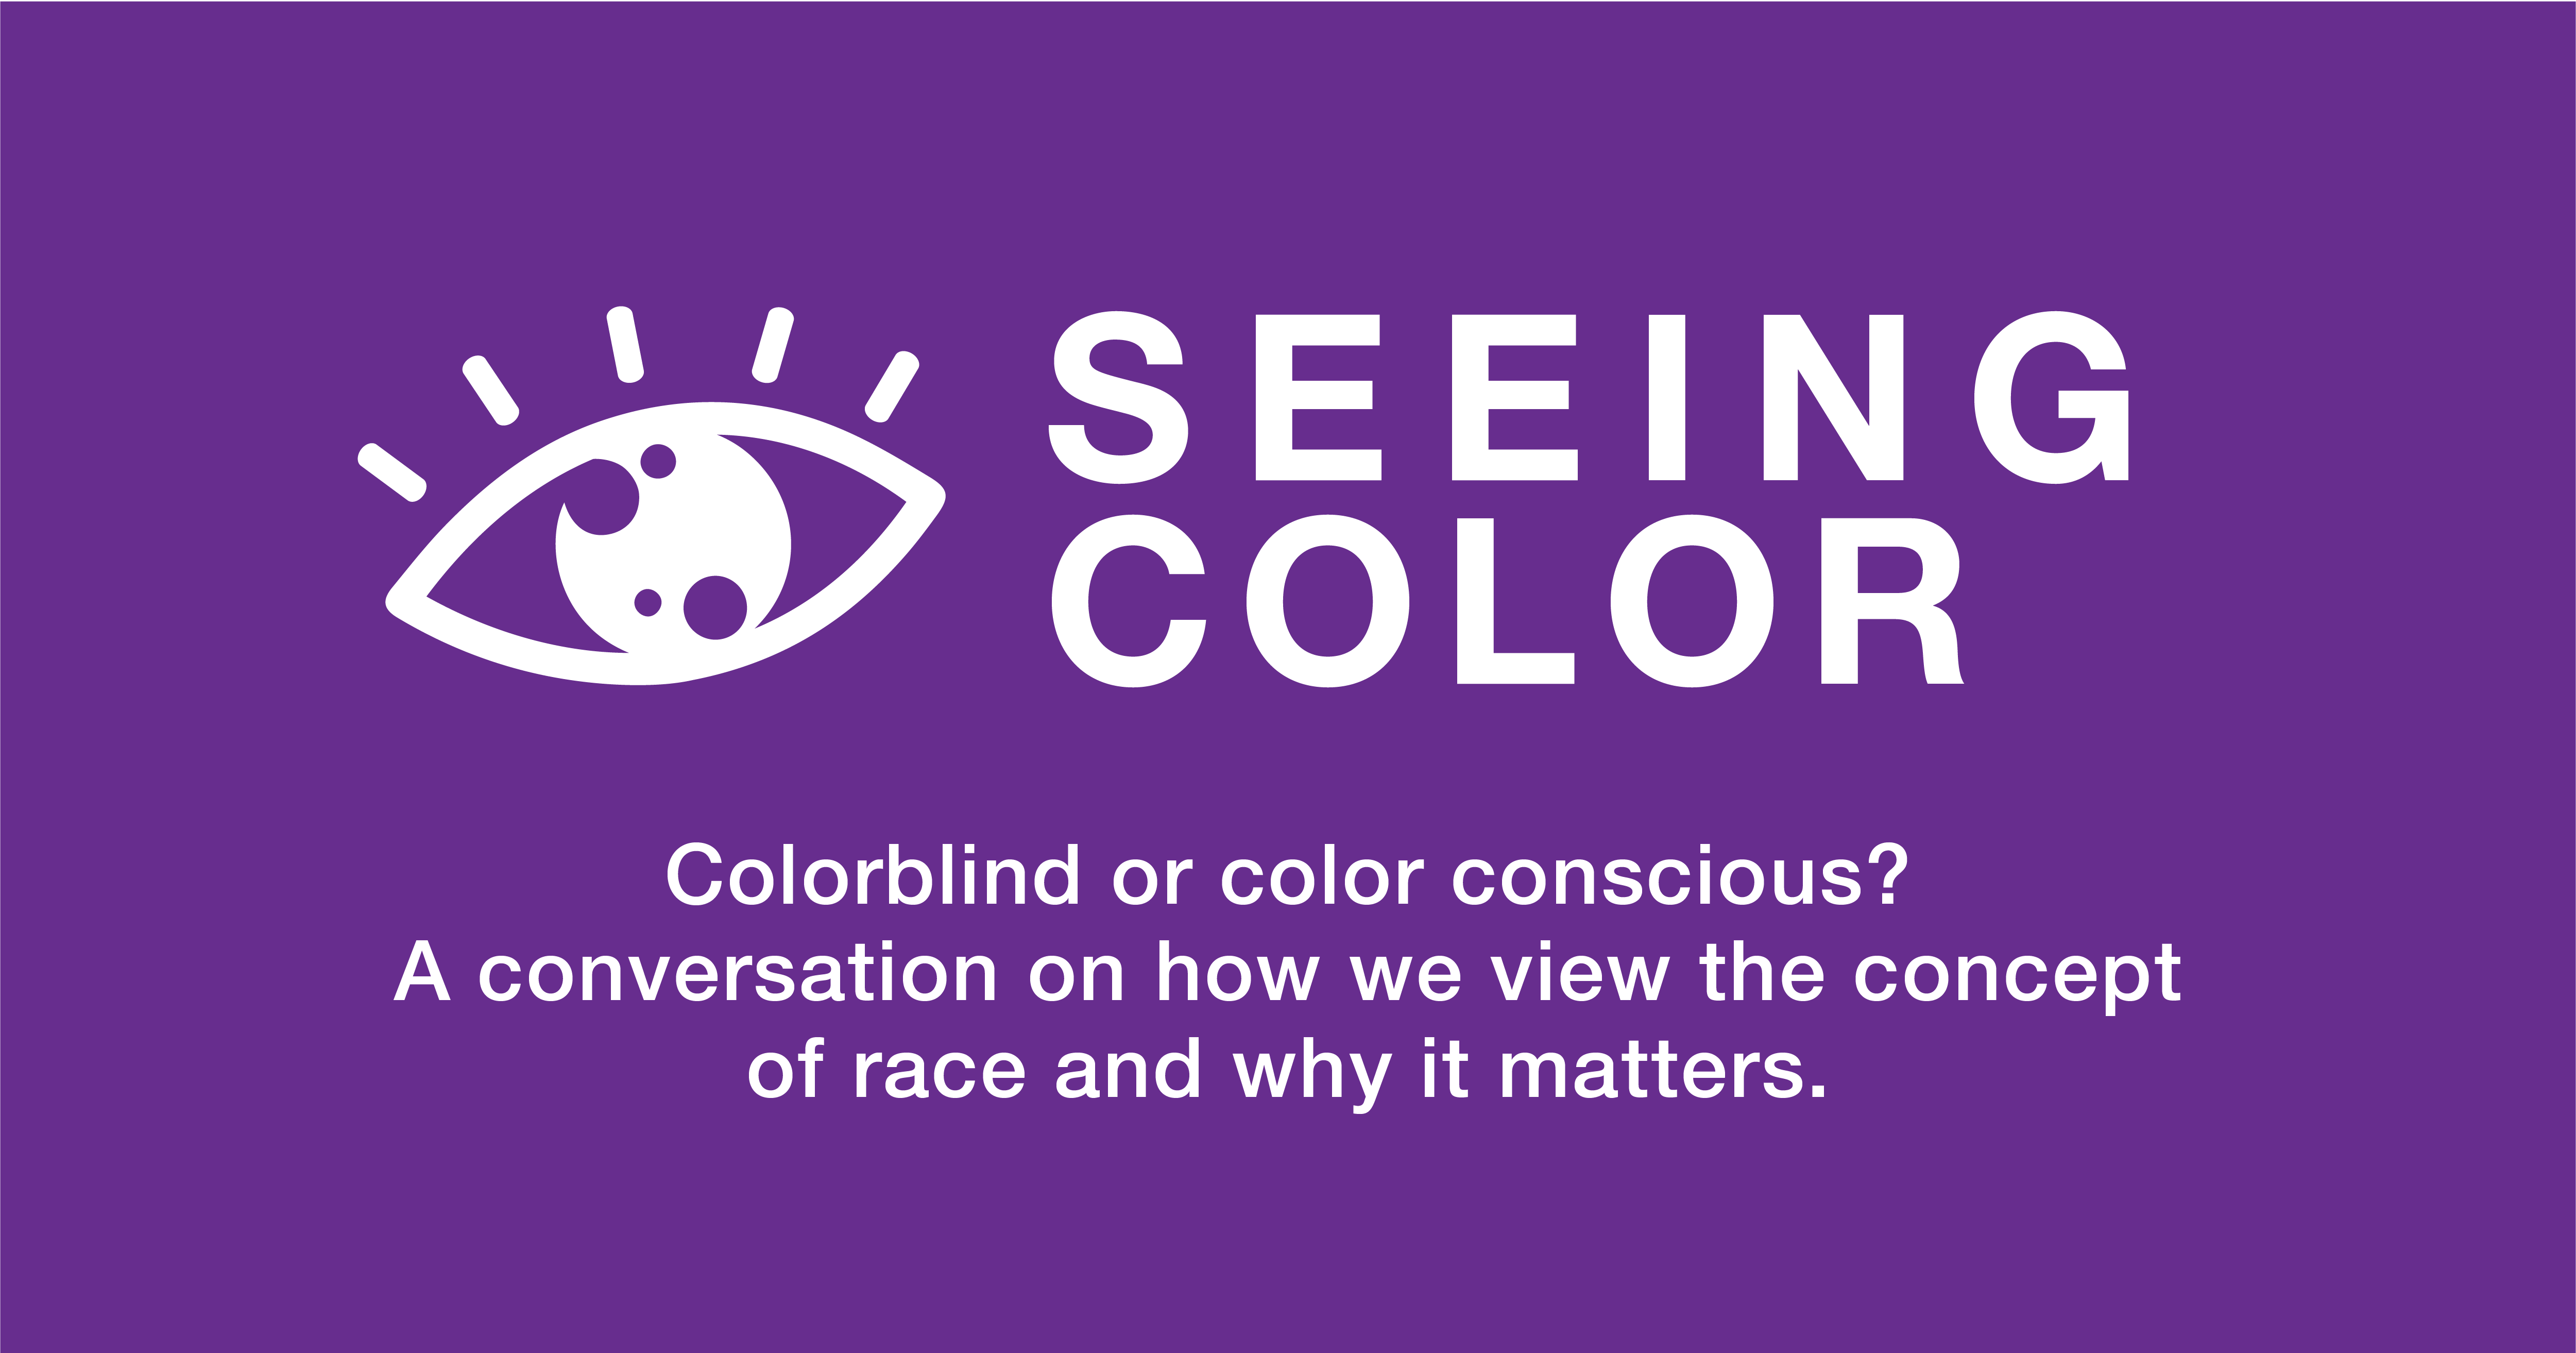 Our Newest Conversation Topic: Seeing Color